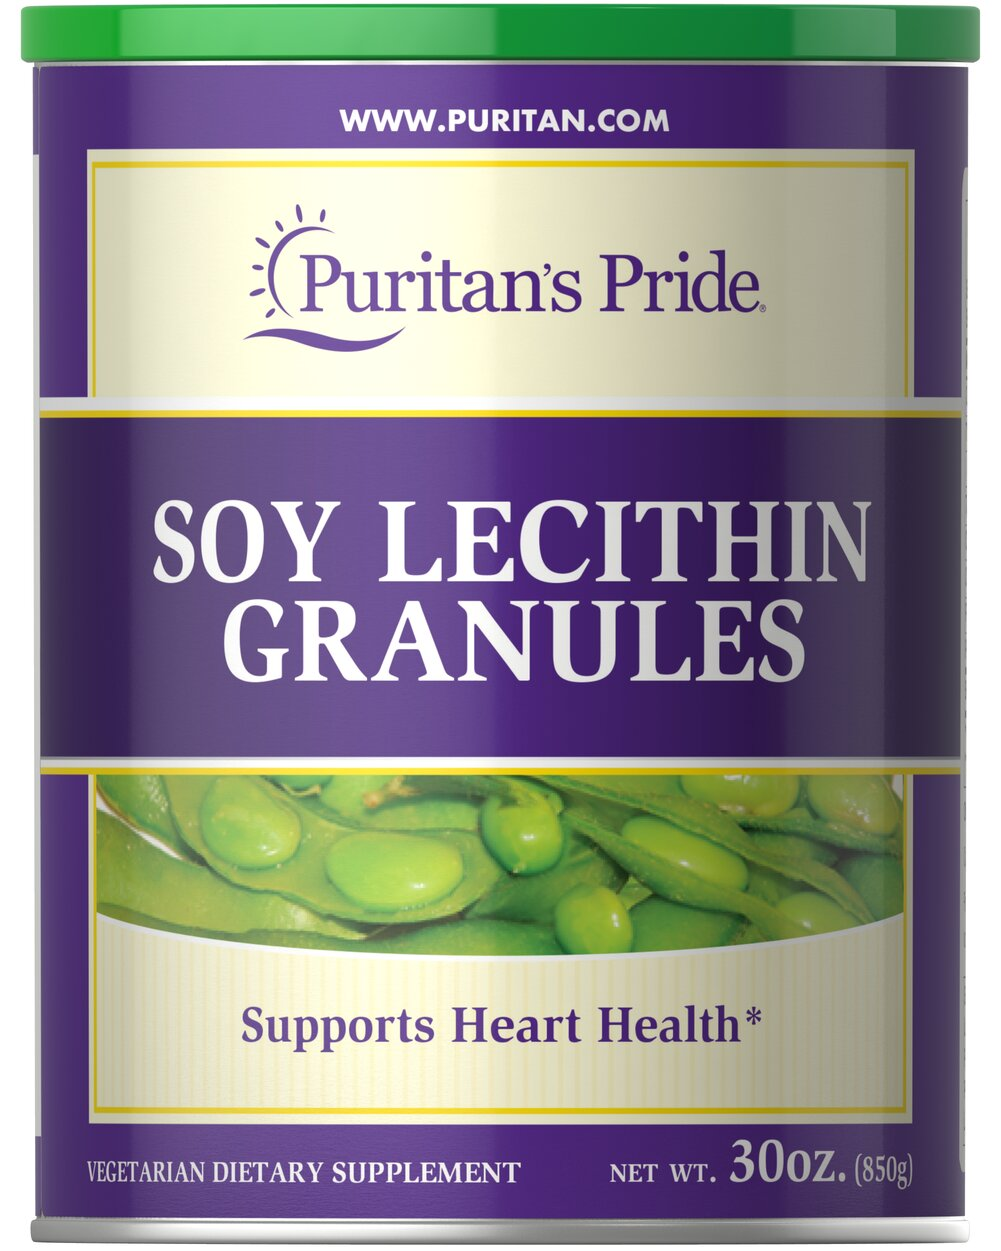 Soy Lecithin Granules 1680 mg <p>95% SOY PHOSPHATIDES </p><p>Finest Quality</p> <p>Supports Mental Function & Nerve Cell Health**</p><p>Lecithin is an important natural source of choline, inositol, and linoleic acid. Choline and Inositol are vital components of all cell membranes, and play important roles in cell growth and function.**</p> 30 oz Granules 1680 mg $25.99